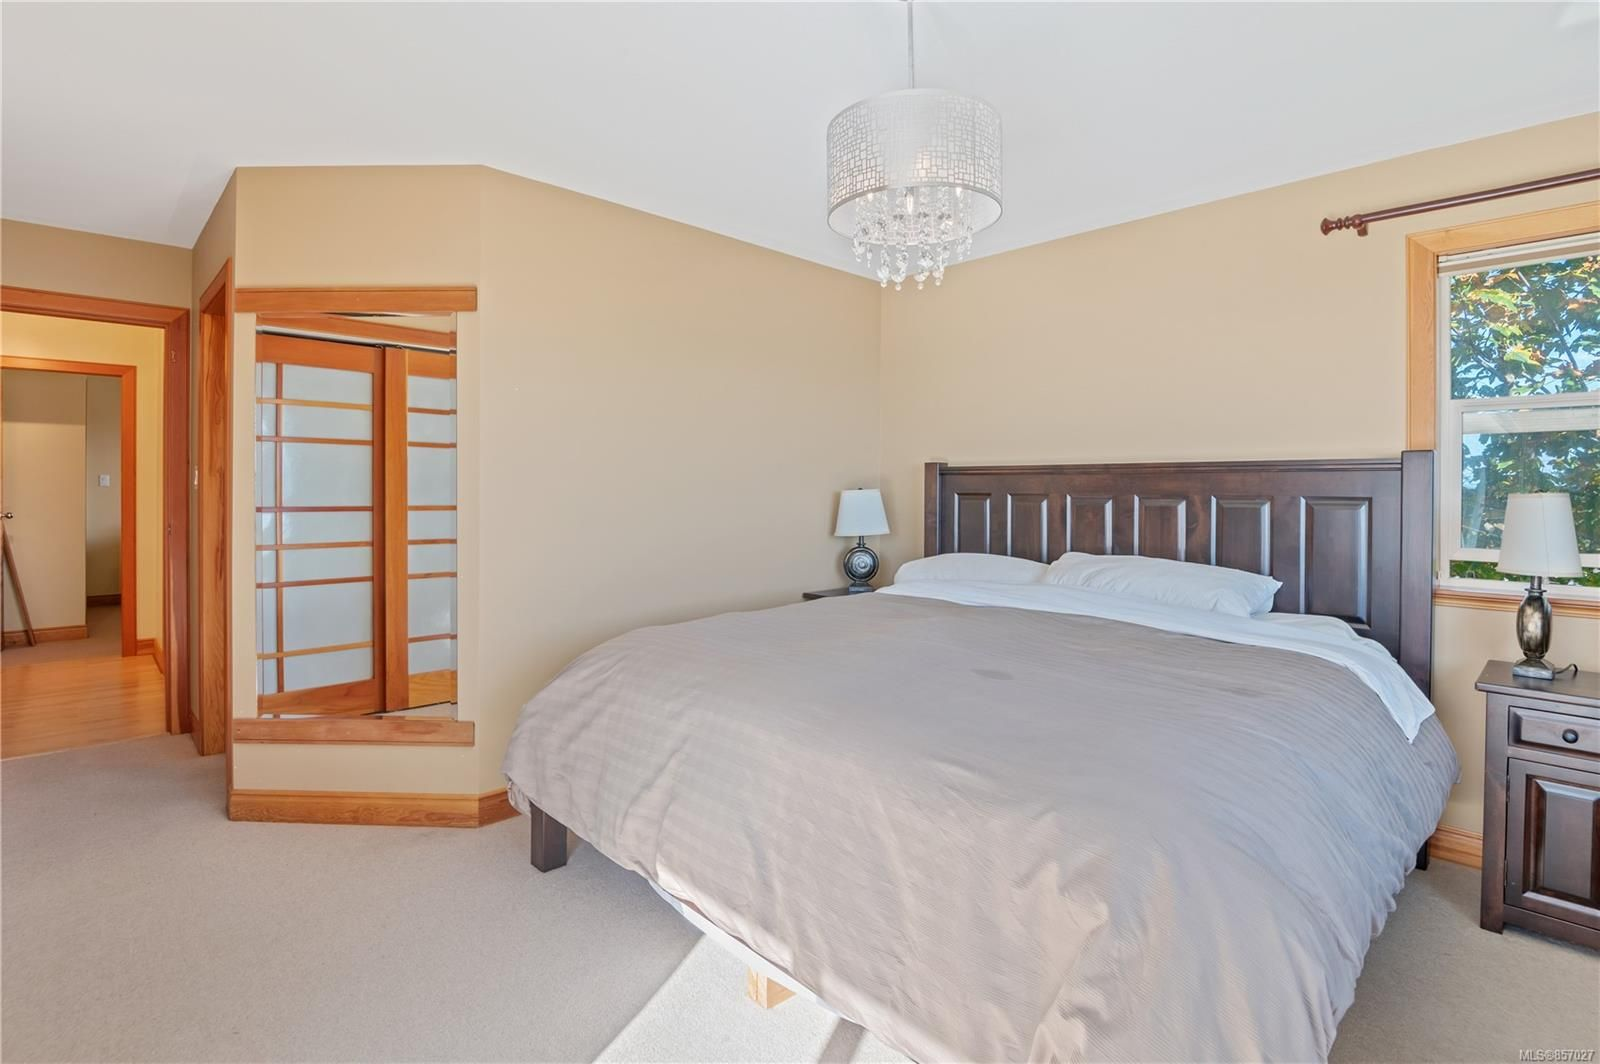 Photo 35: Photos: 253 S Alder St in : CR Campbell River South House for sale (Campbell River)  : MLS®# 857027